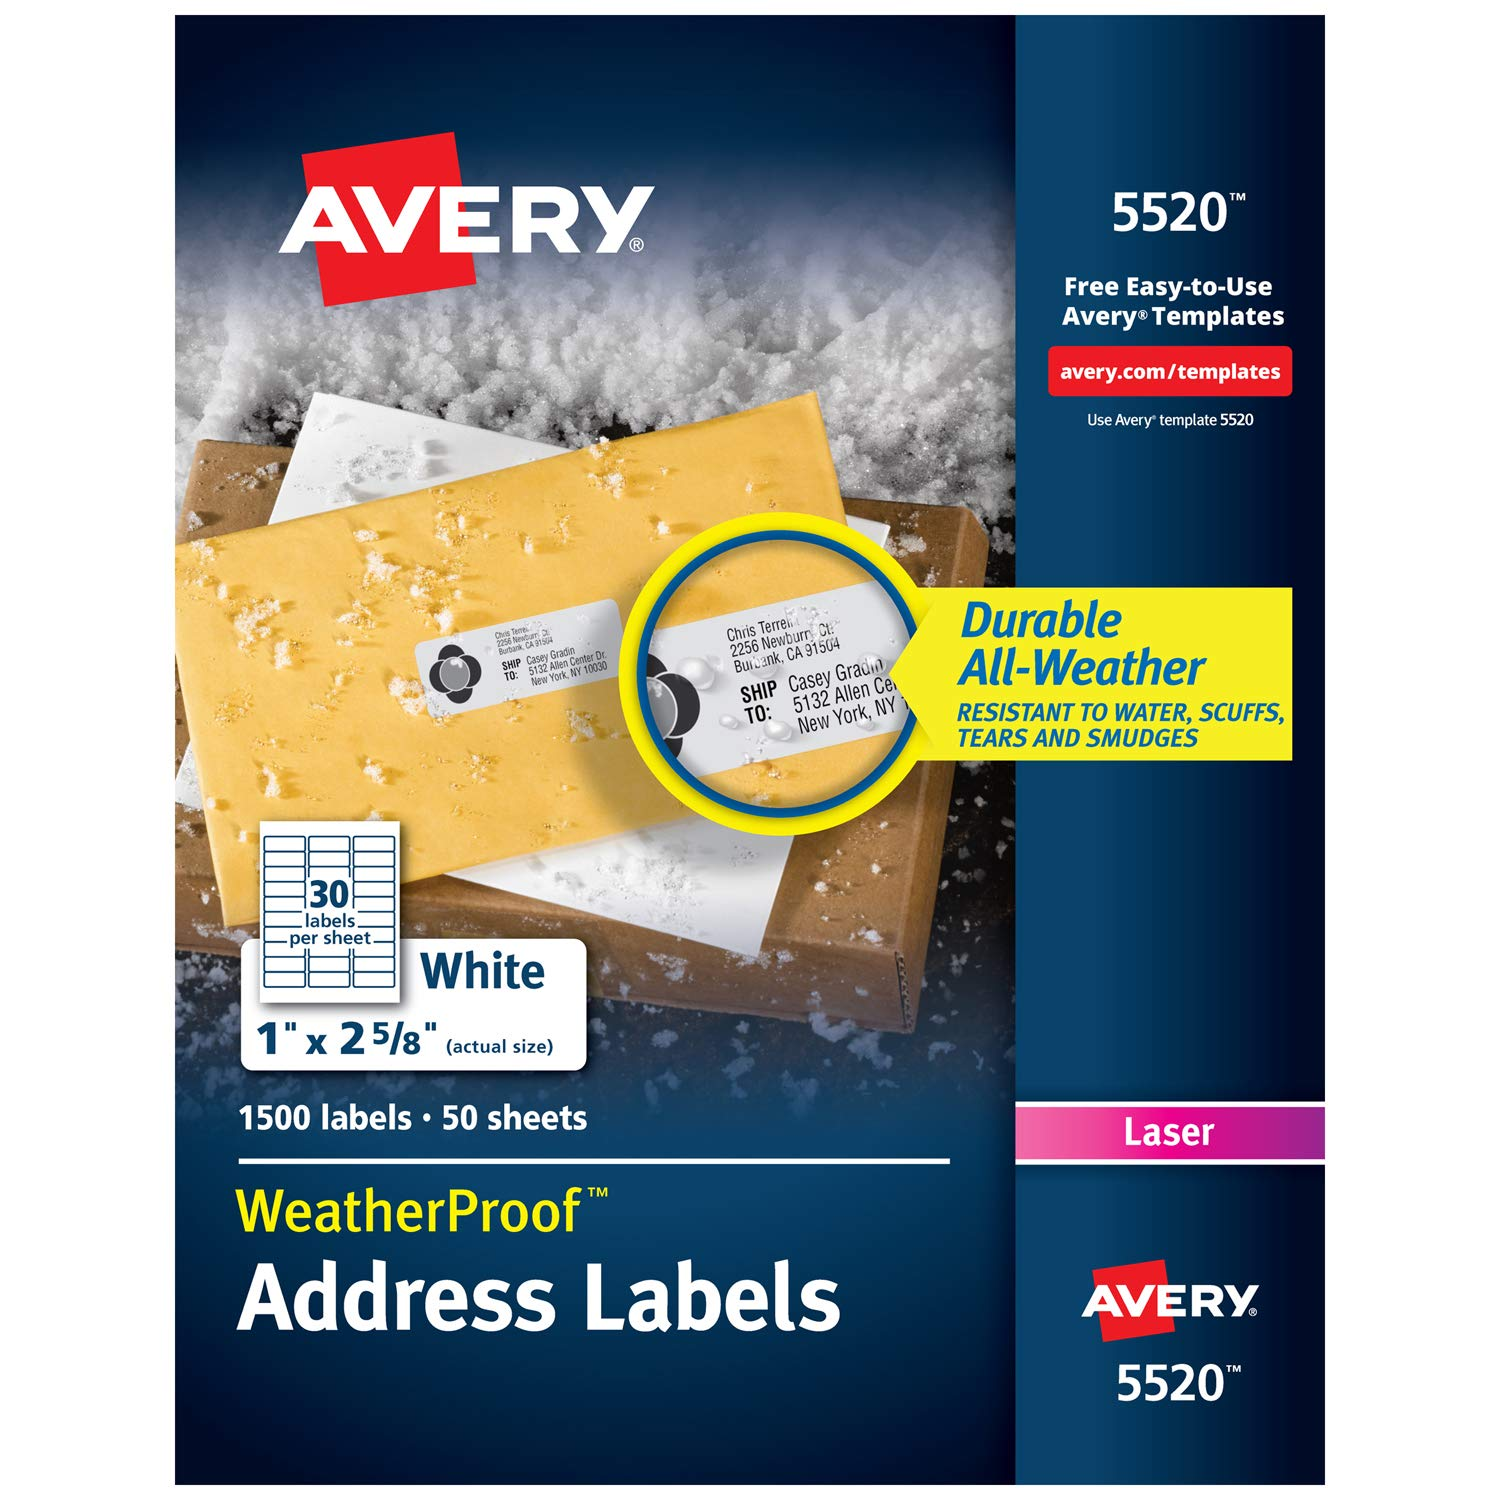 "Avery WeatherProof Address Labels with TrueBlock Technology for Laser Printers 1"" x 2-5/8"", Box of 1,500 (5520), White"